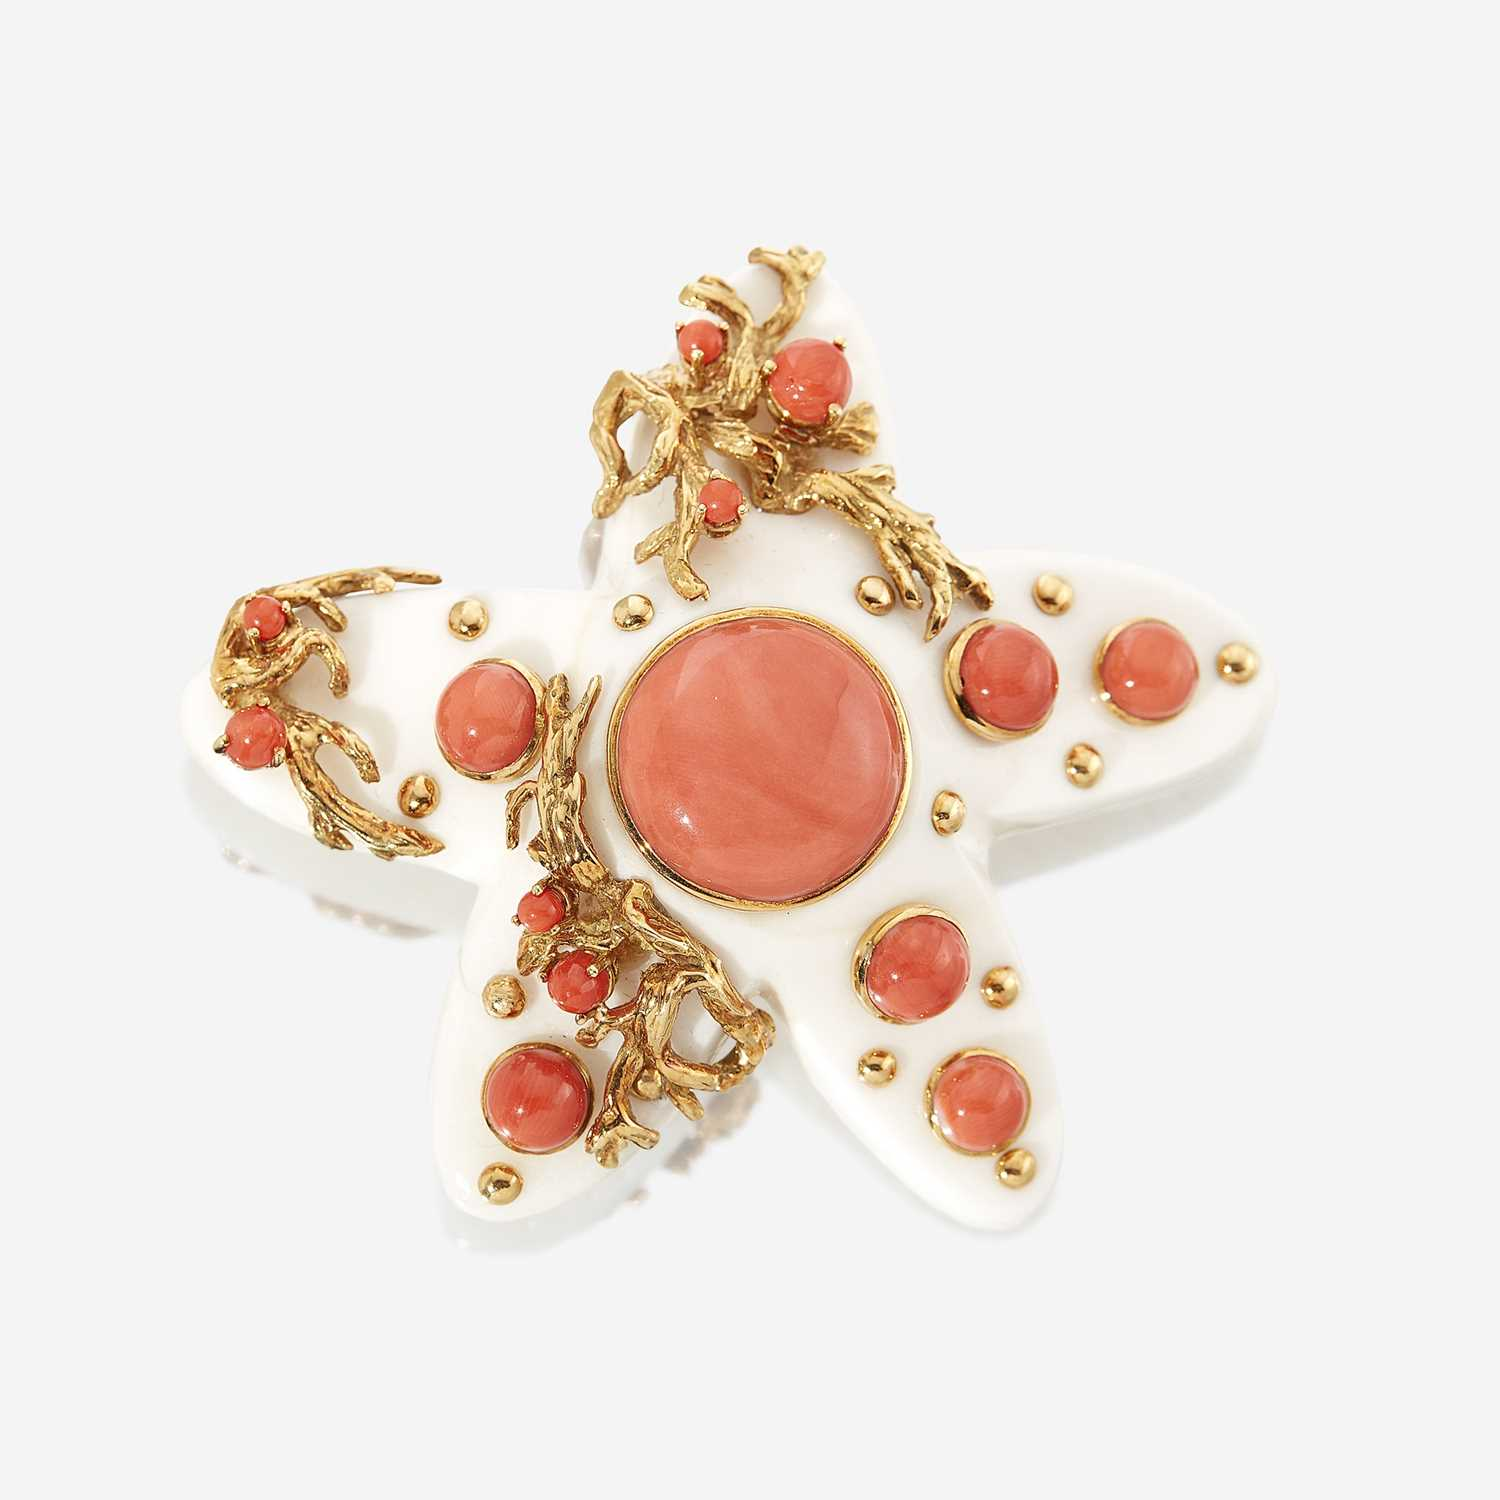 Lot 71 - A white and red coral and eighteen karat gold brooch, Seaman Schepps